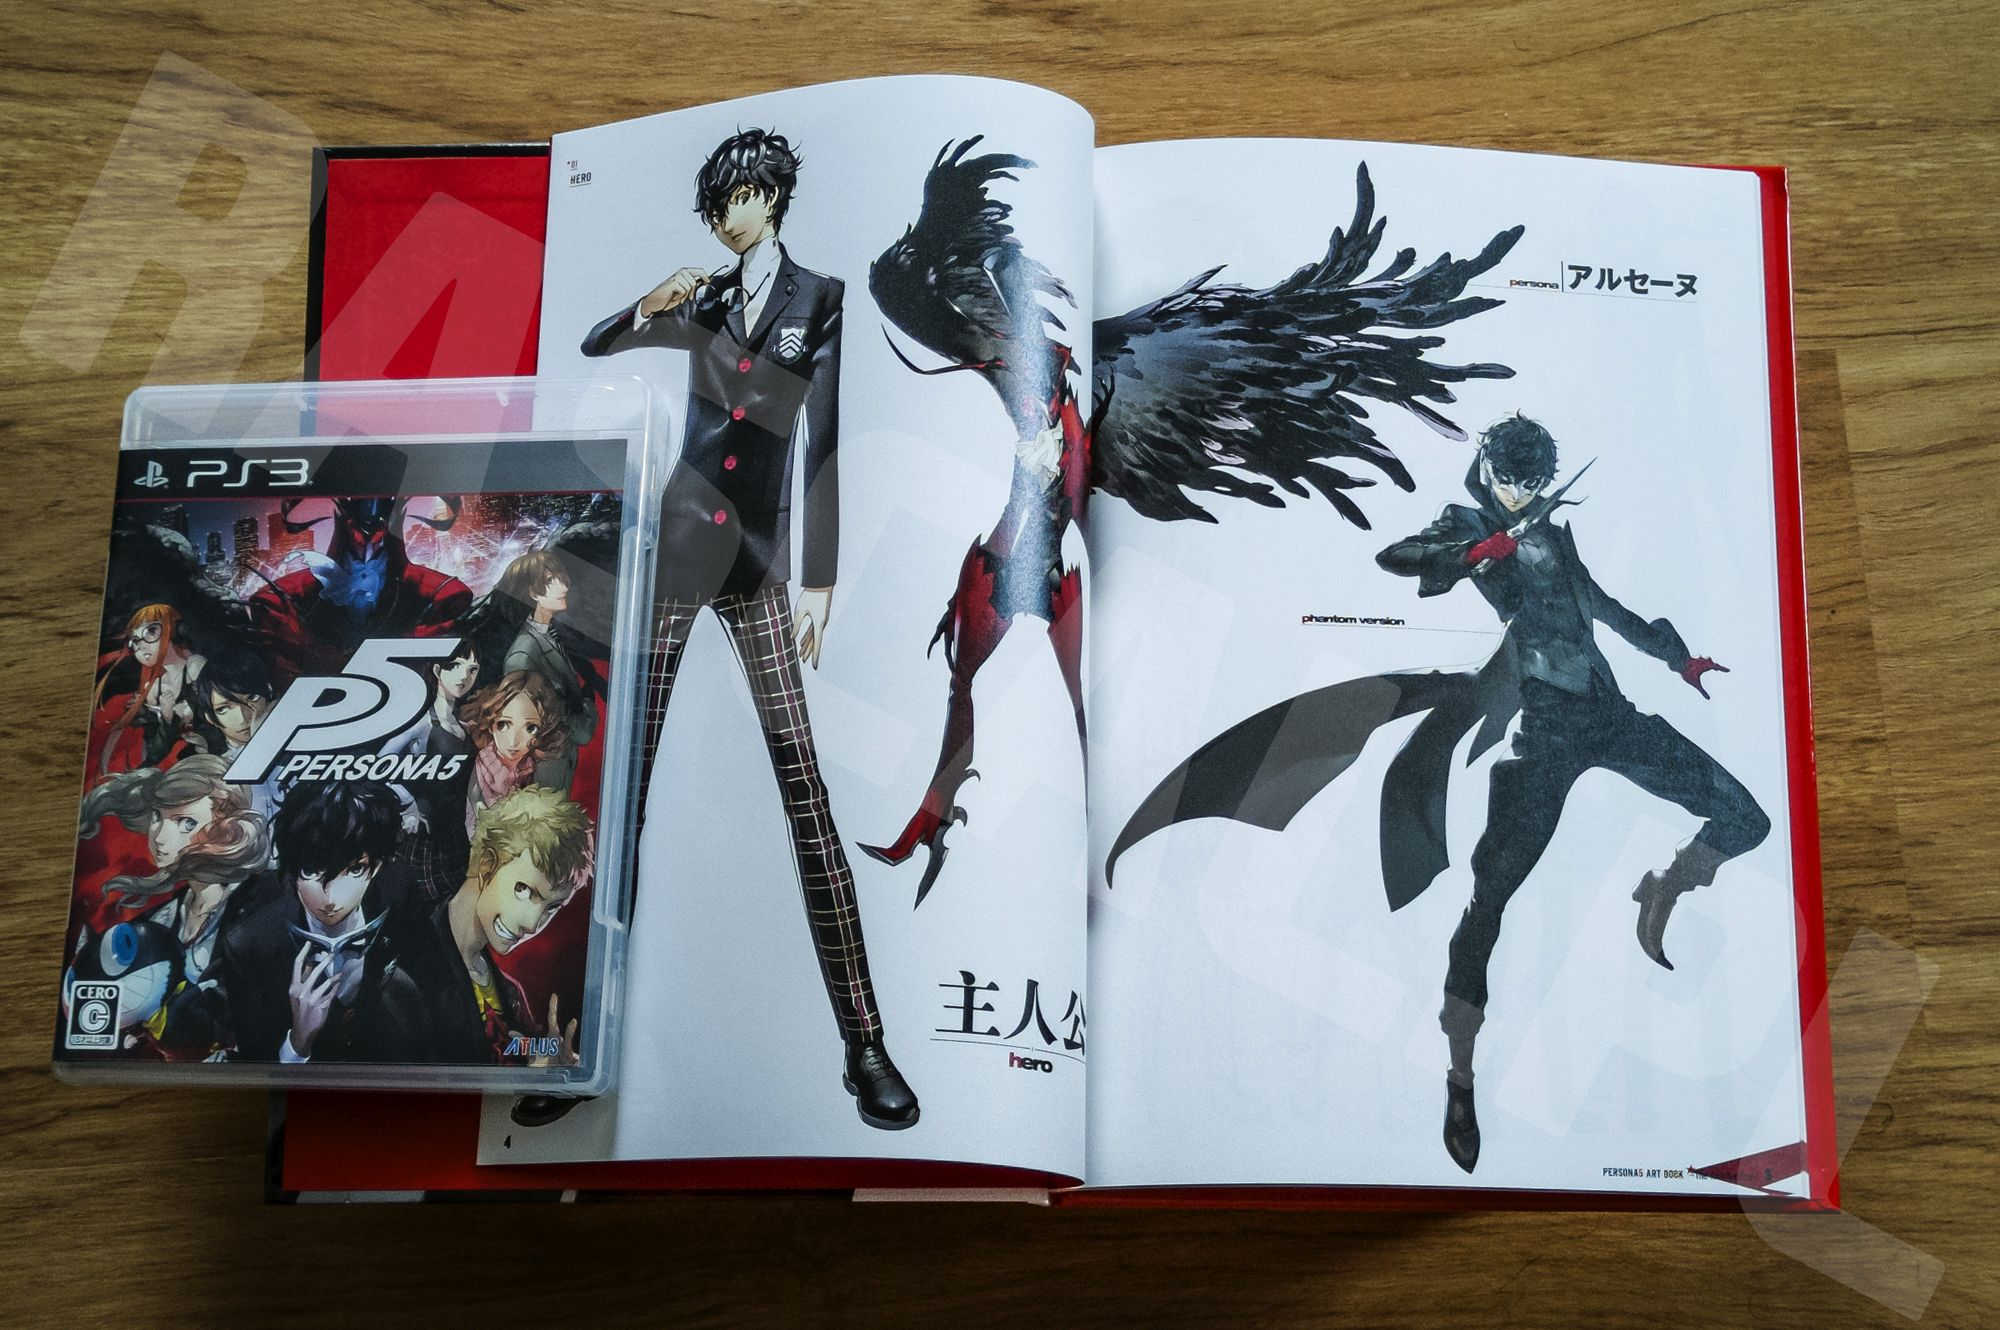 Persona 5 Collectors Edition - Artbook - 03 - Główny Bohater